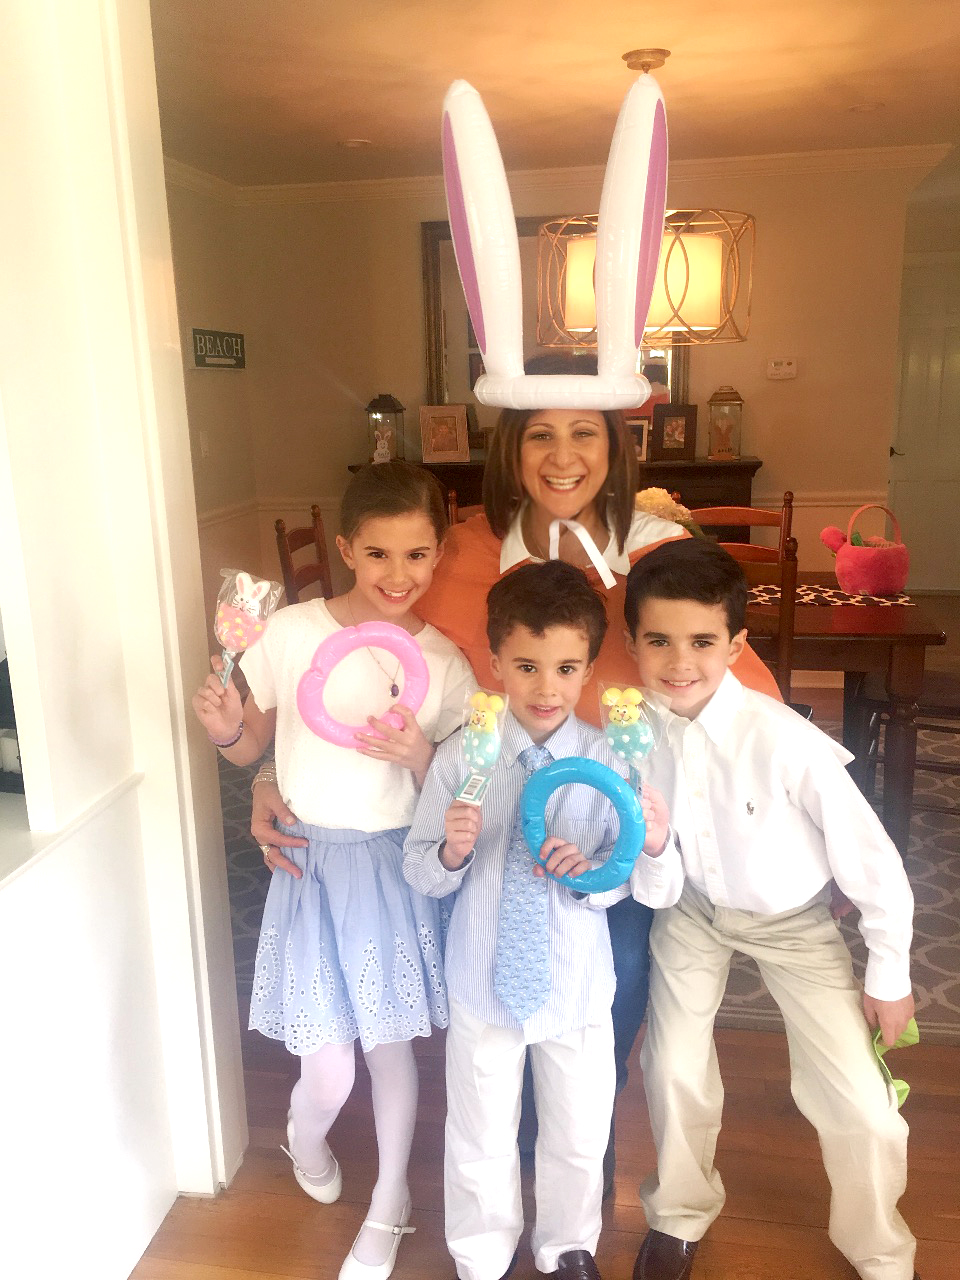 Celebrating Easter with my nephews and niece